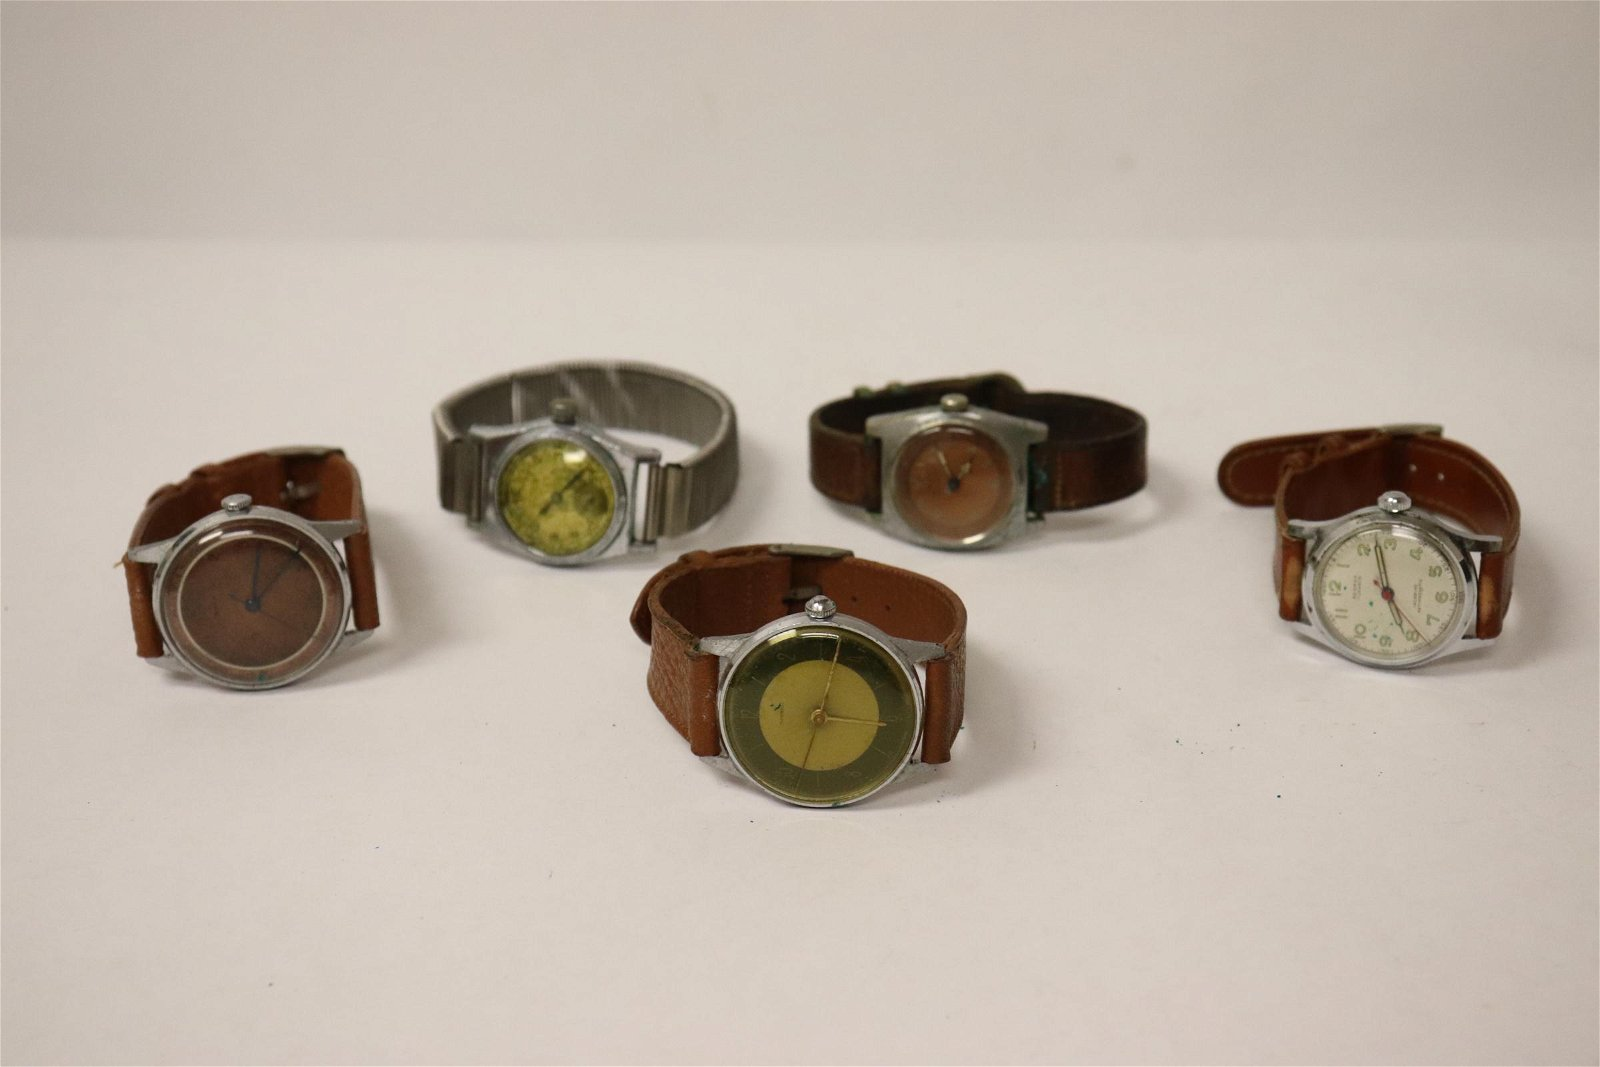 5 vintage watches